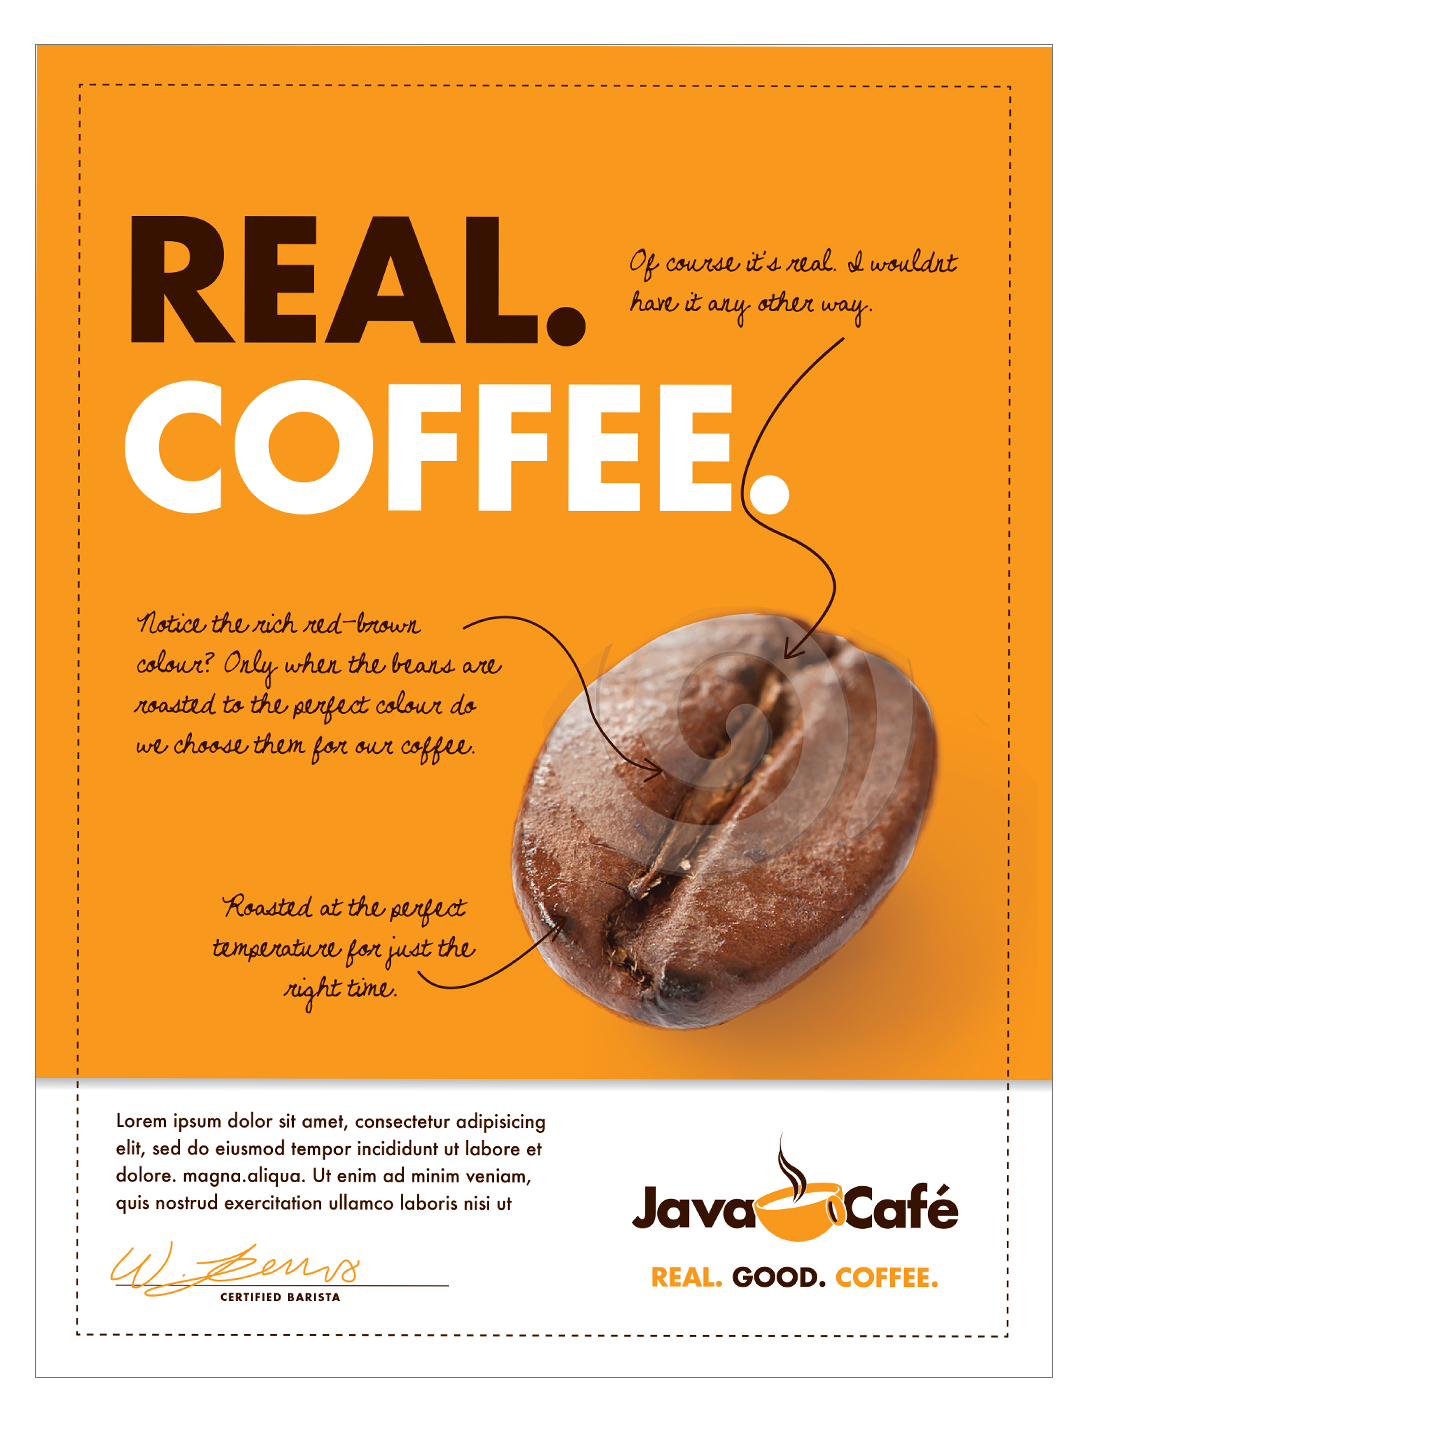 stir-images-shell-javacafe-ad2.png